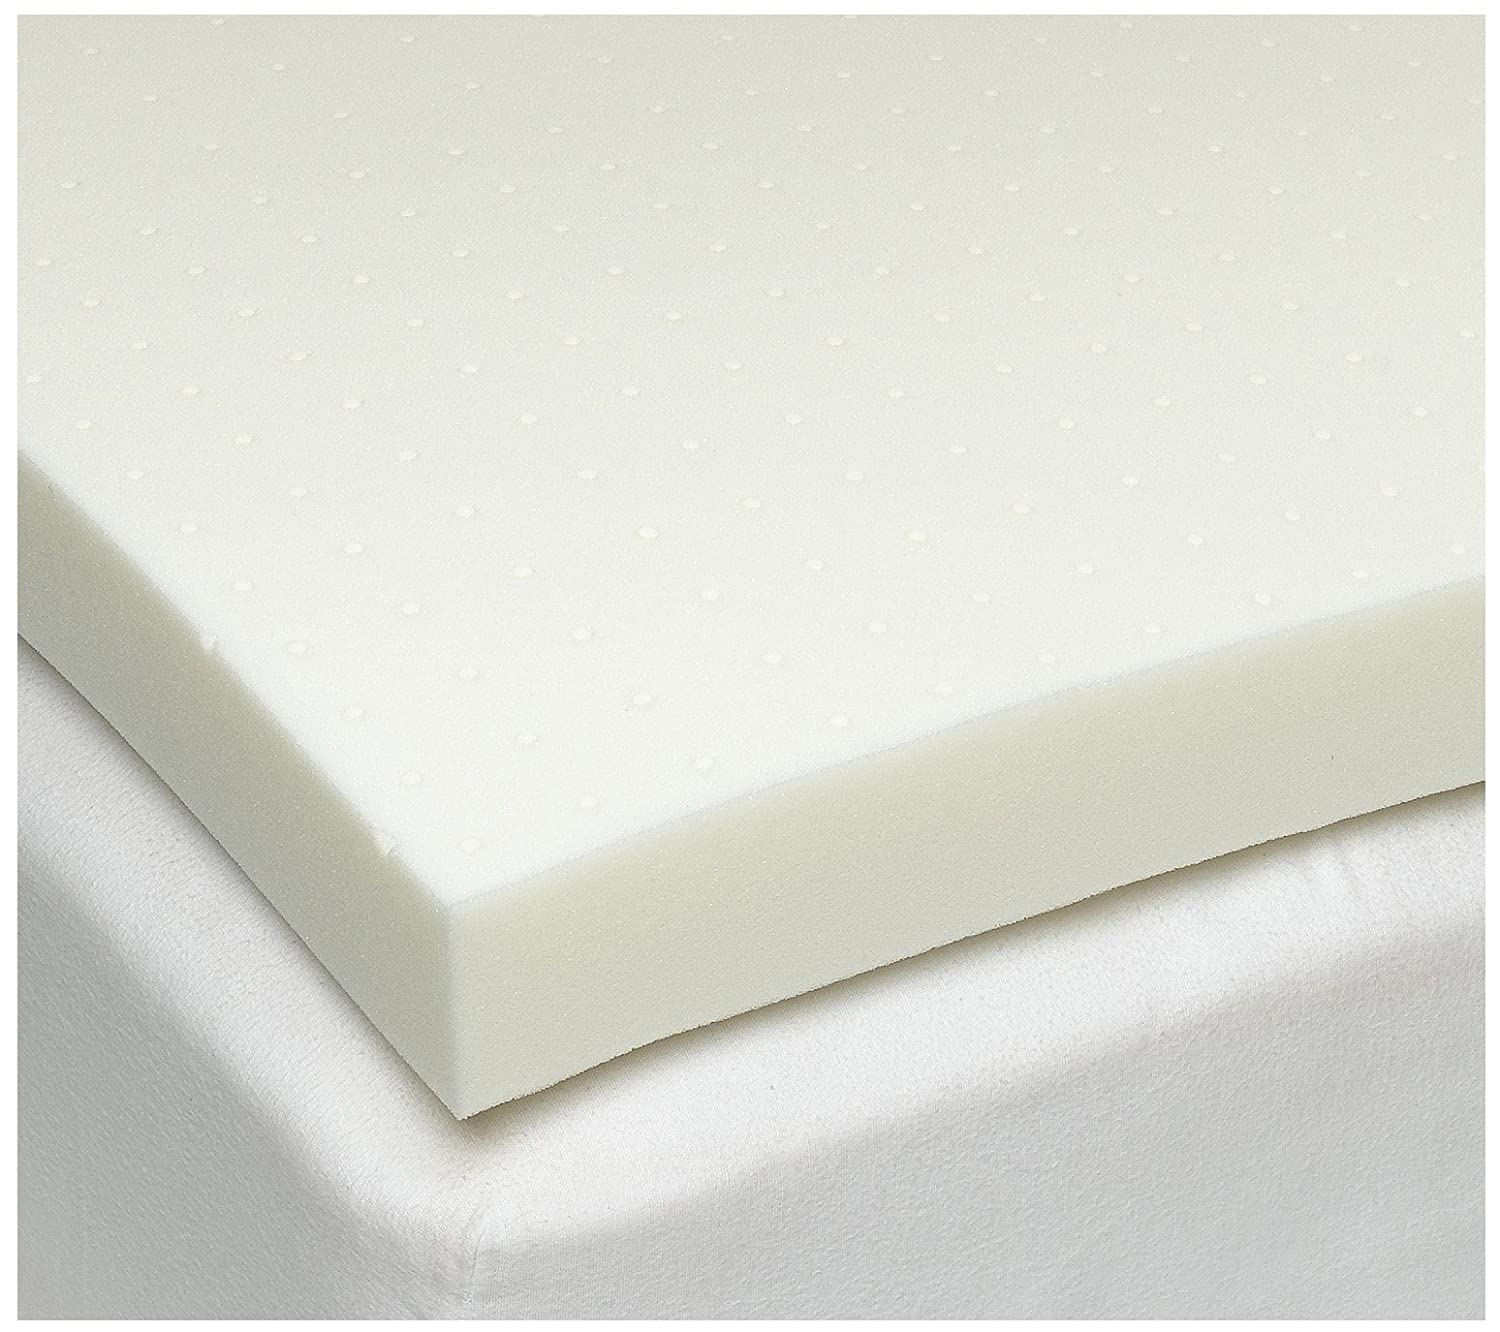 Sleep Joy Memory Foam Topper Sleep Joy 3 Visco2 Memory Foam Mattress Topper